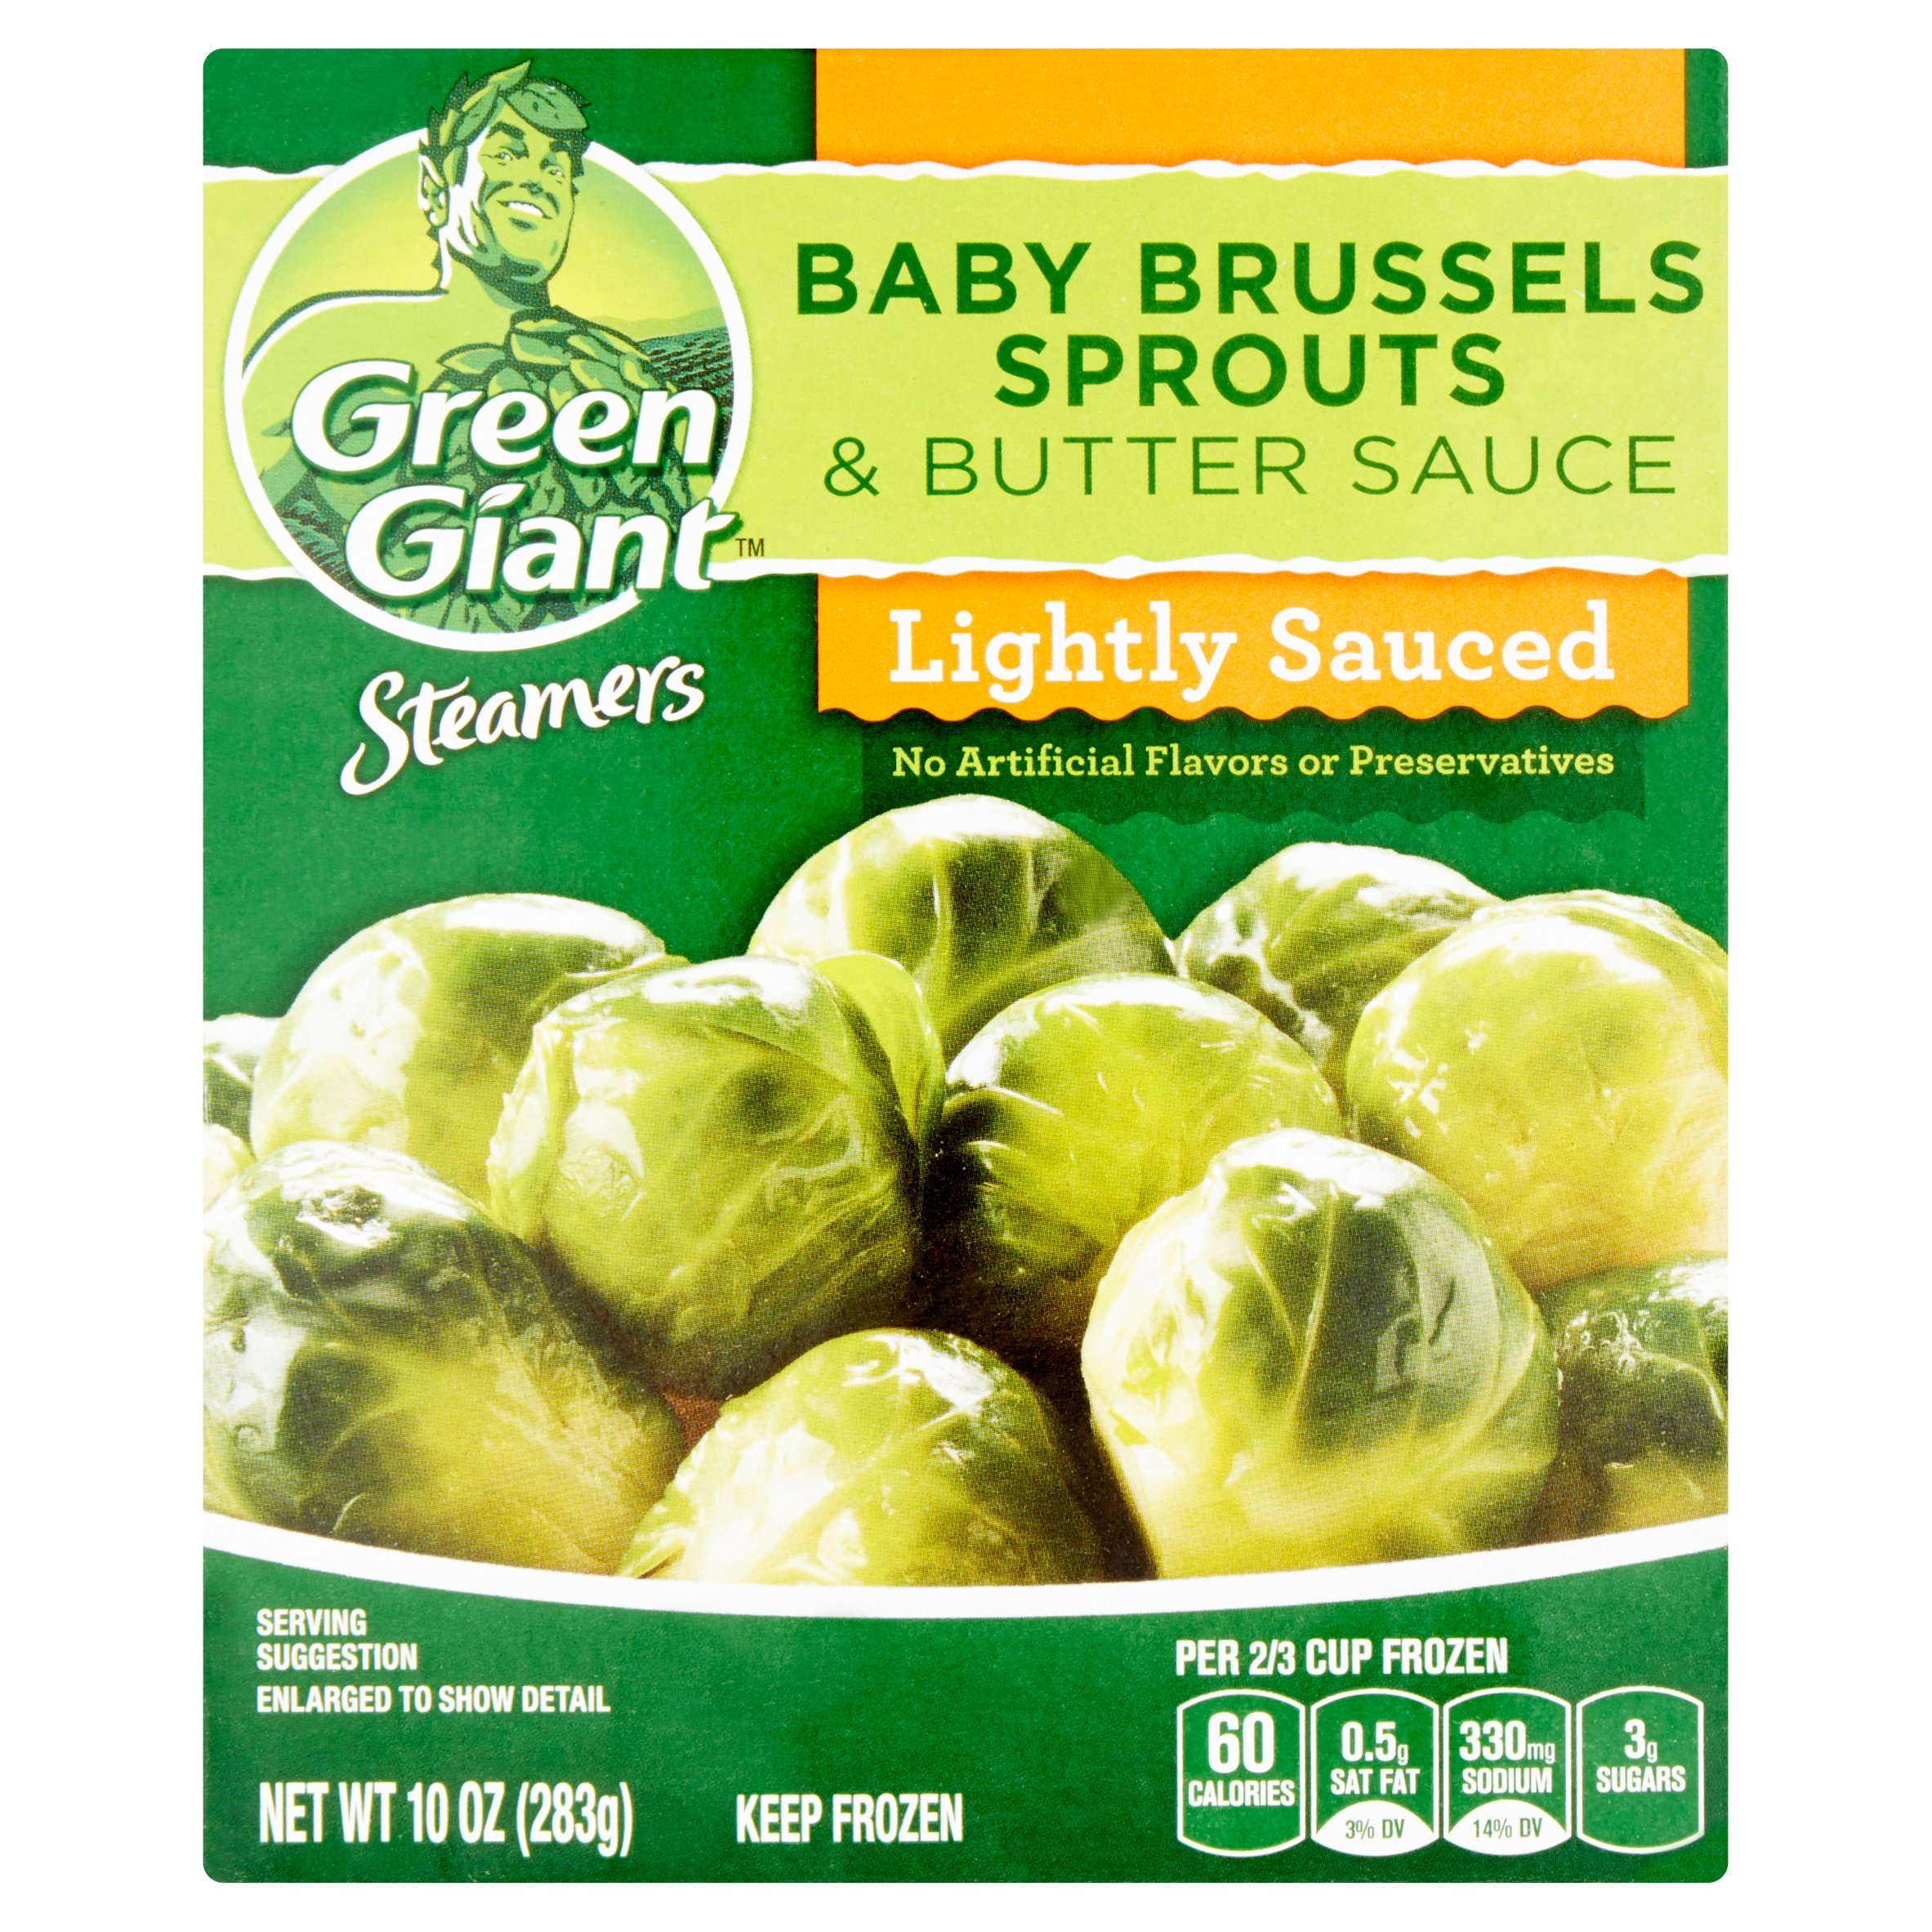 Green Giant Steamers Lightly Sauced Baby Brussels Sprouts & Butter Sauce, 10 oz